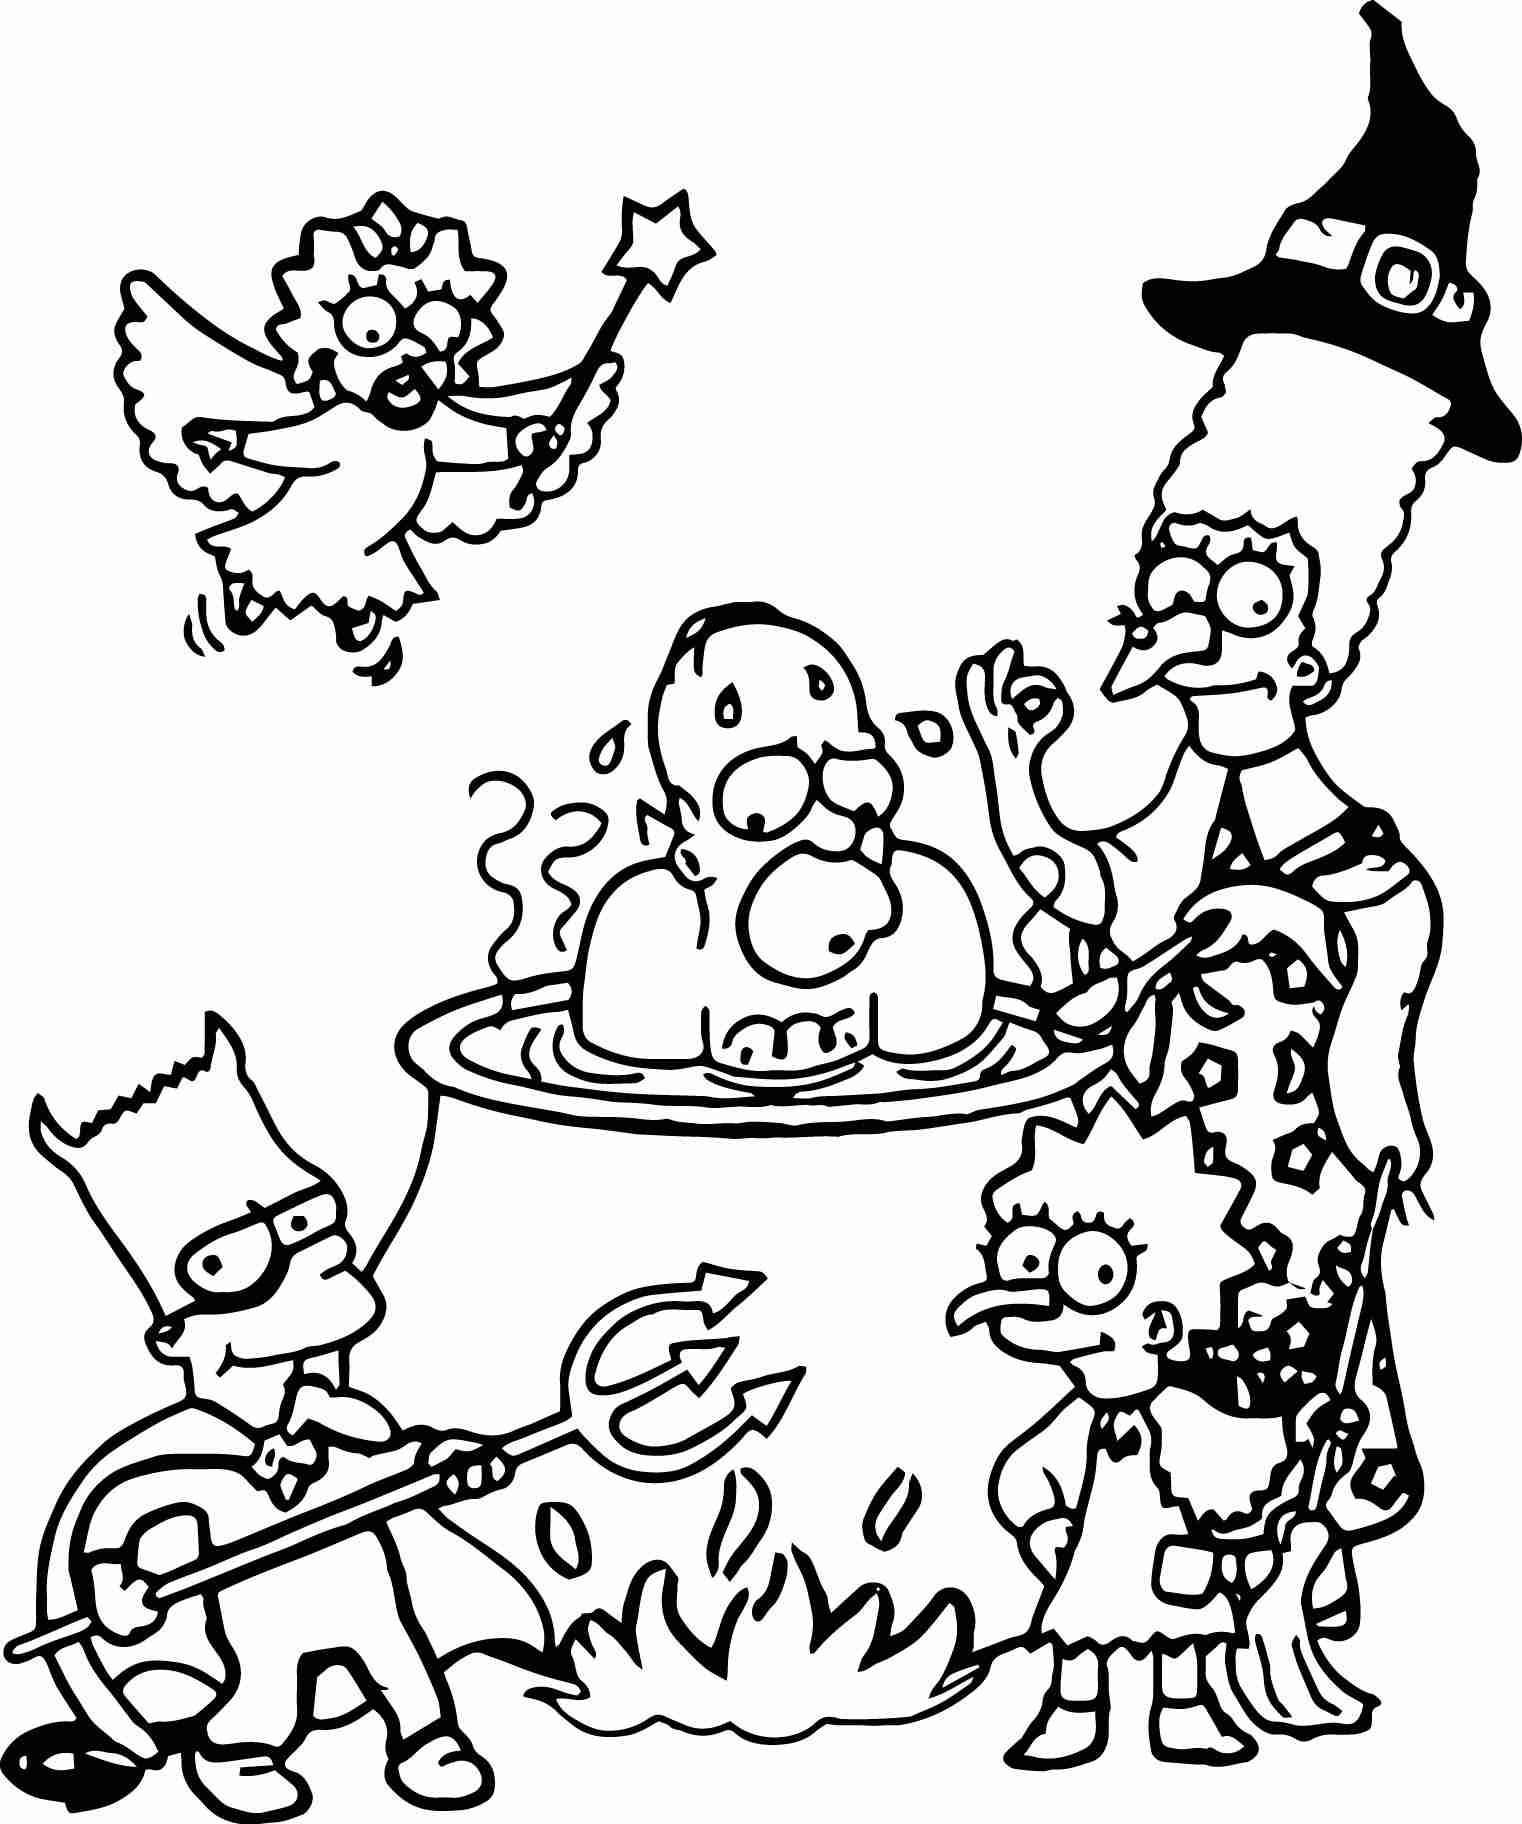 The Simpsons Coloring Pages Simpsons Coloring Pages Pictures High Bart Simpson Halloweenee